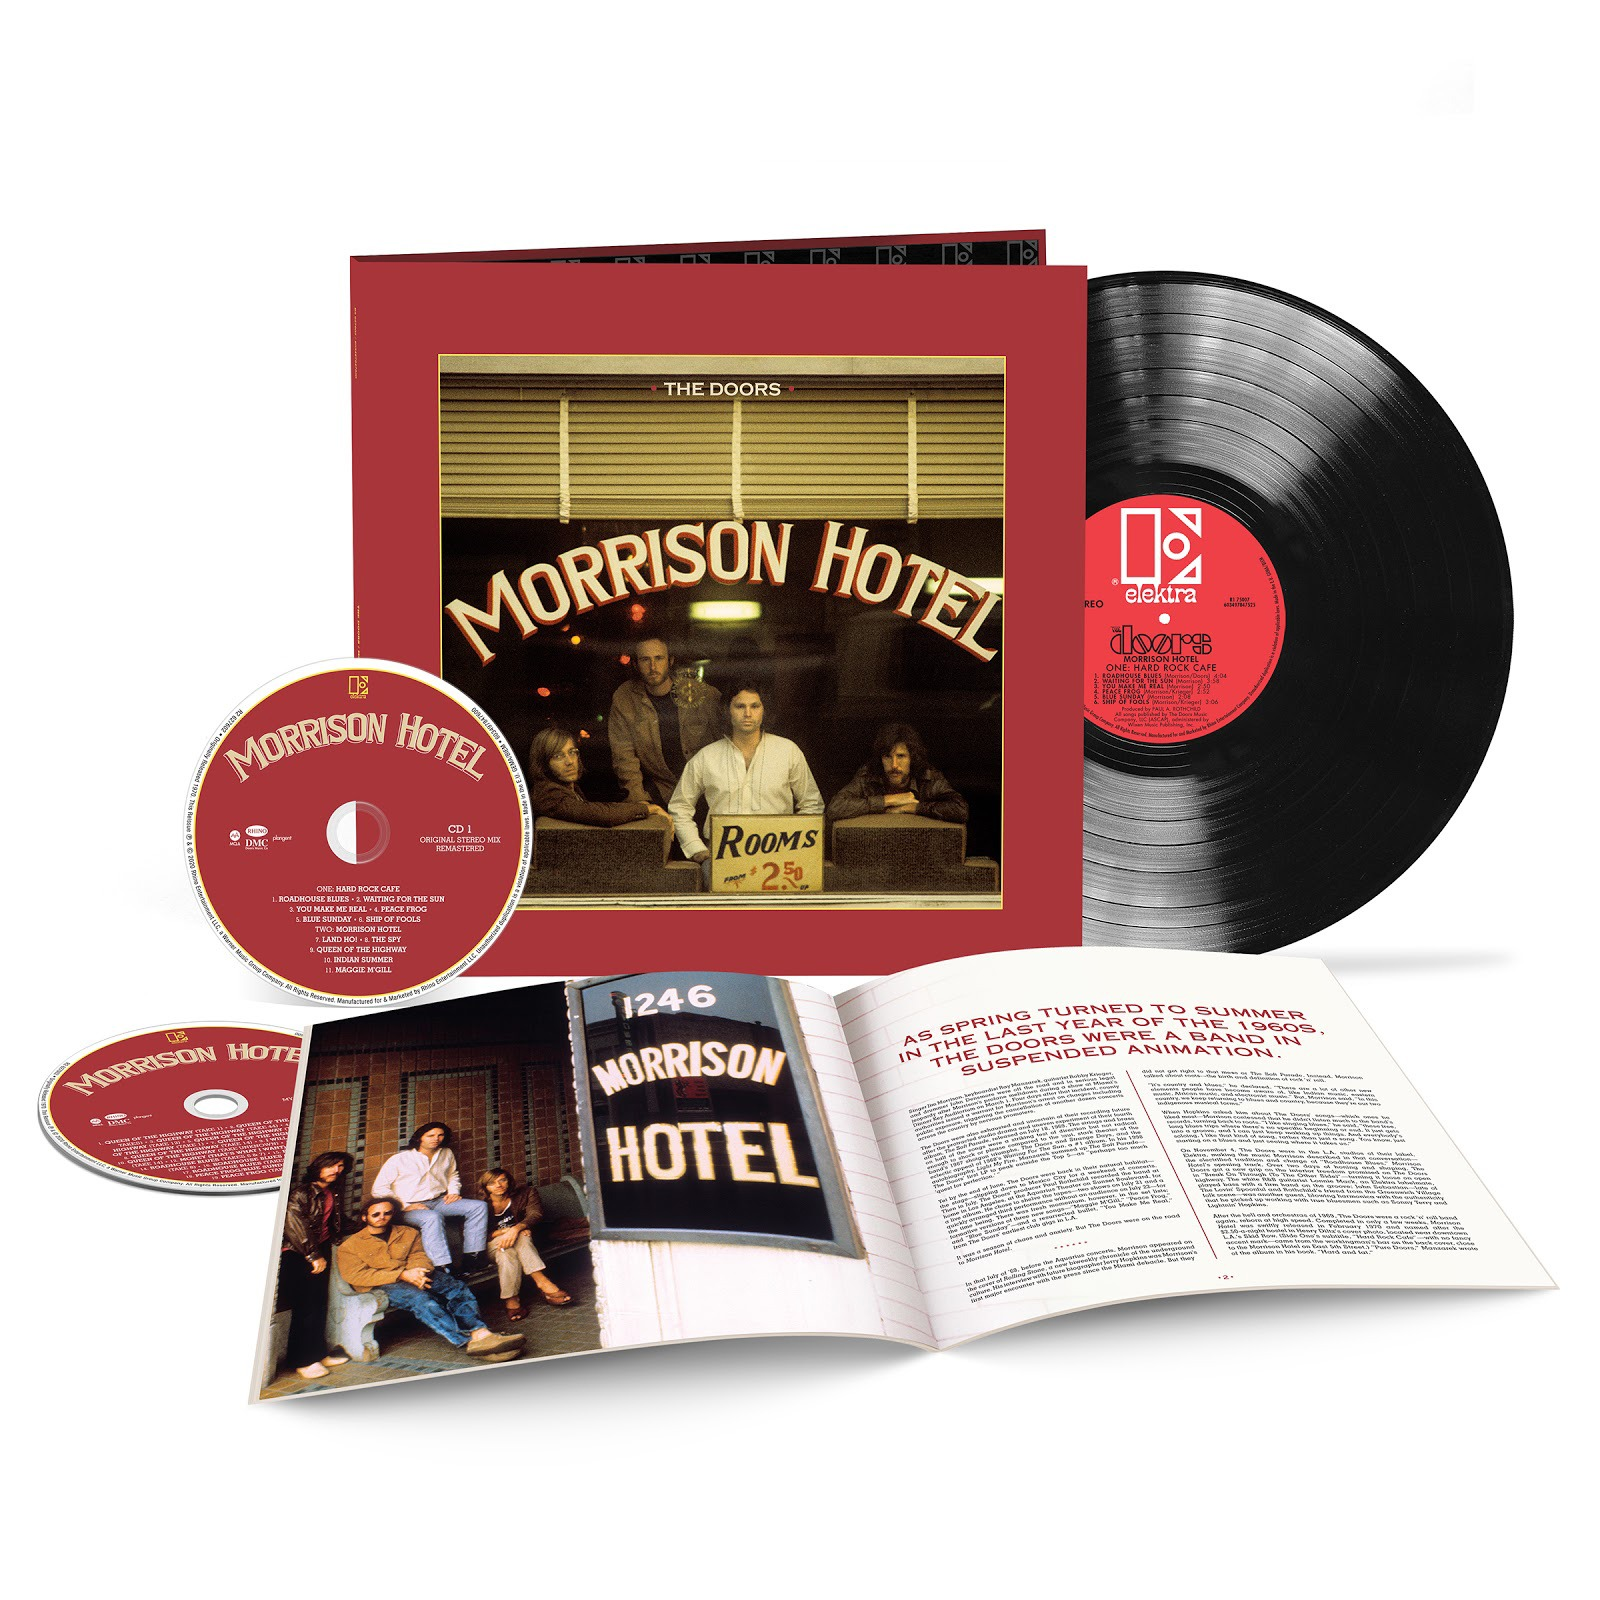 THE DOORS celebrate 50th anniversary of 'Morrison Hotel' with special deluxe edition release